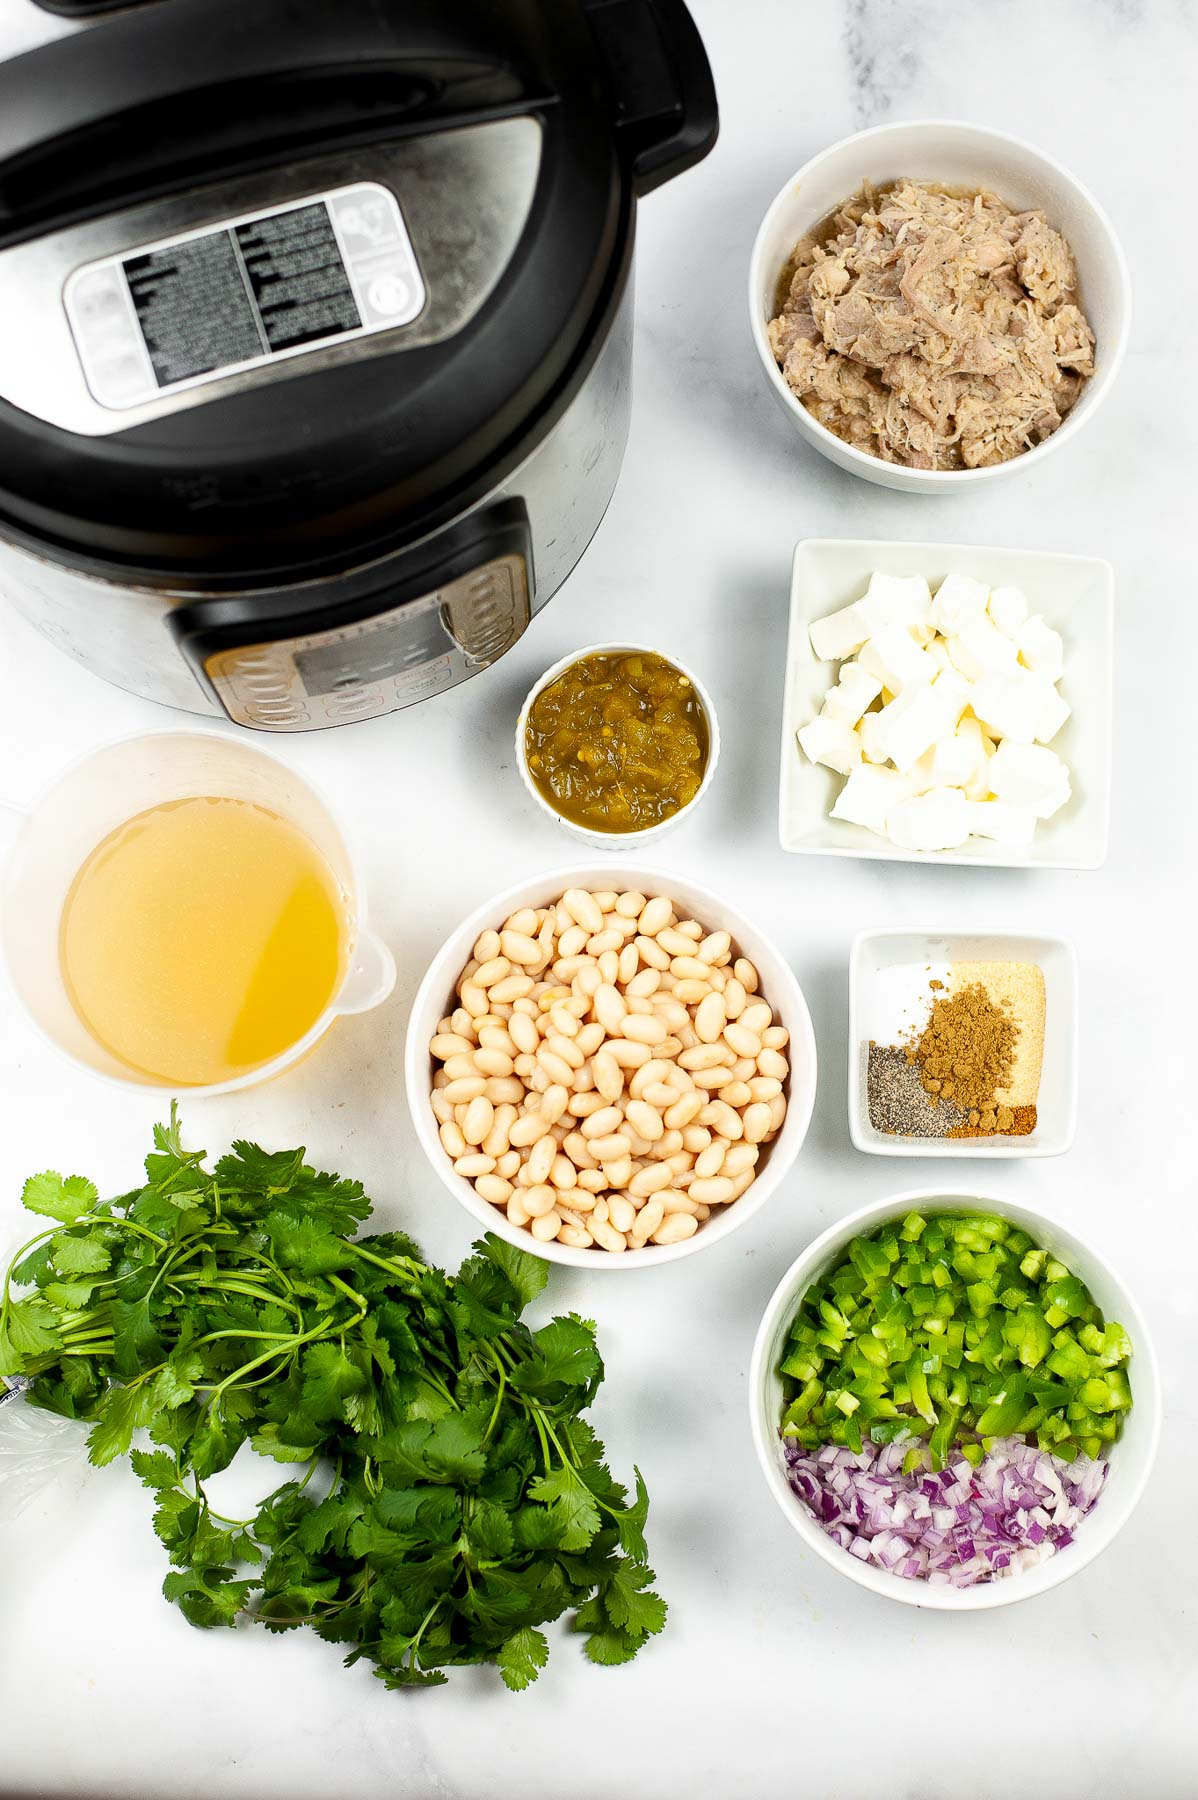 Ingredients to make white chicken chili in the Instant Pot